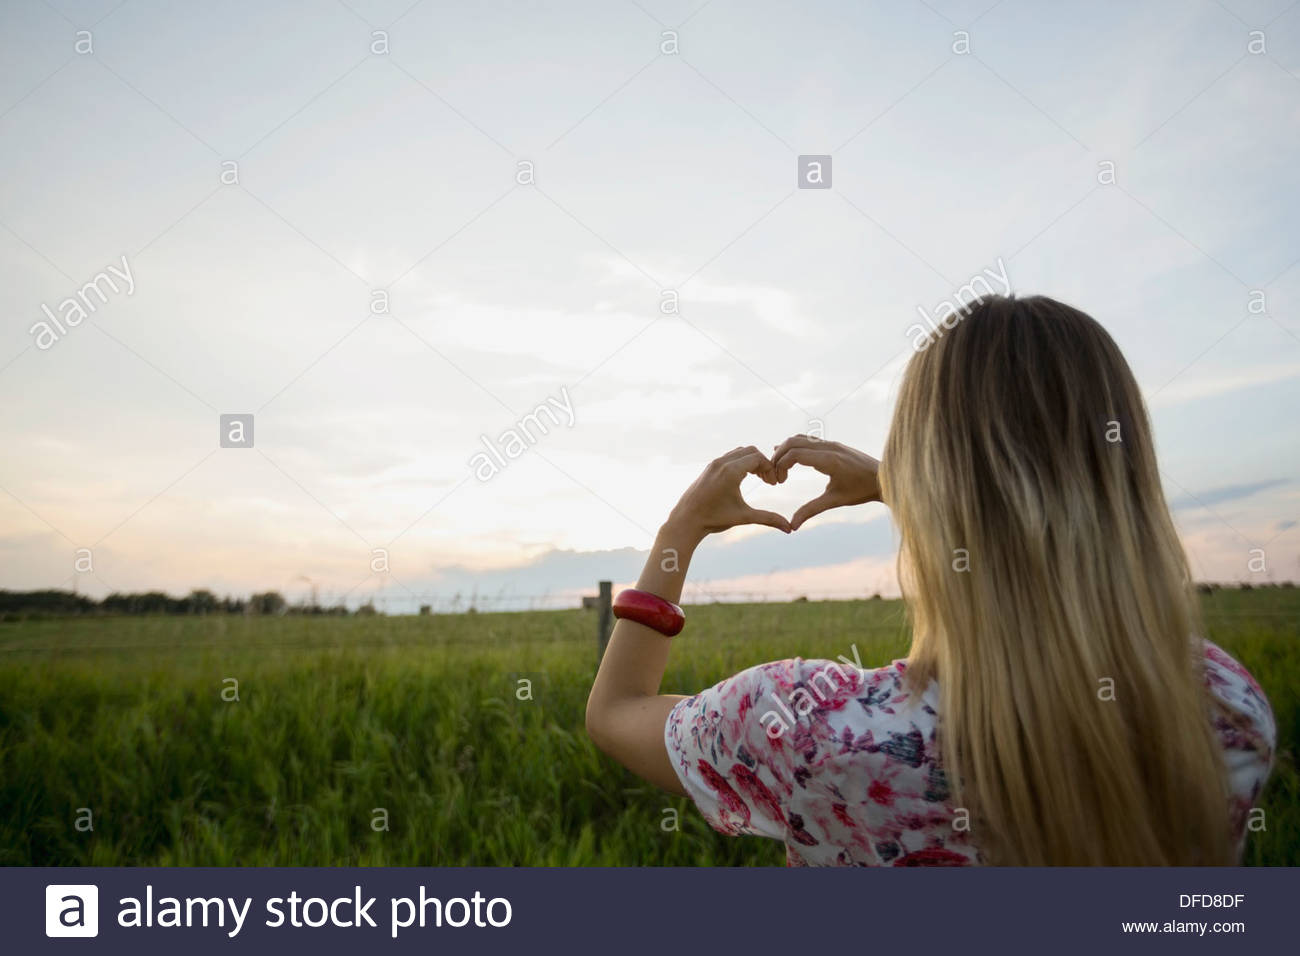 Rear view of woman framing heart with hands against sky - Stock Image